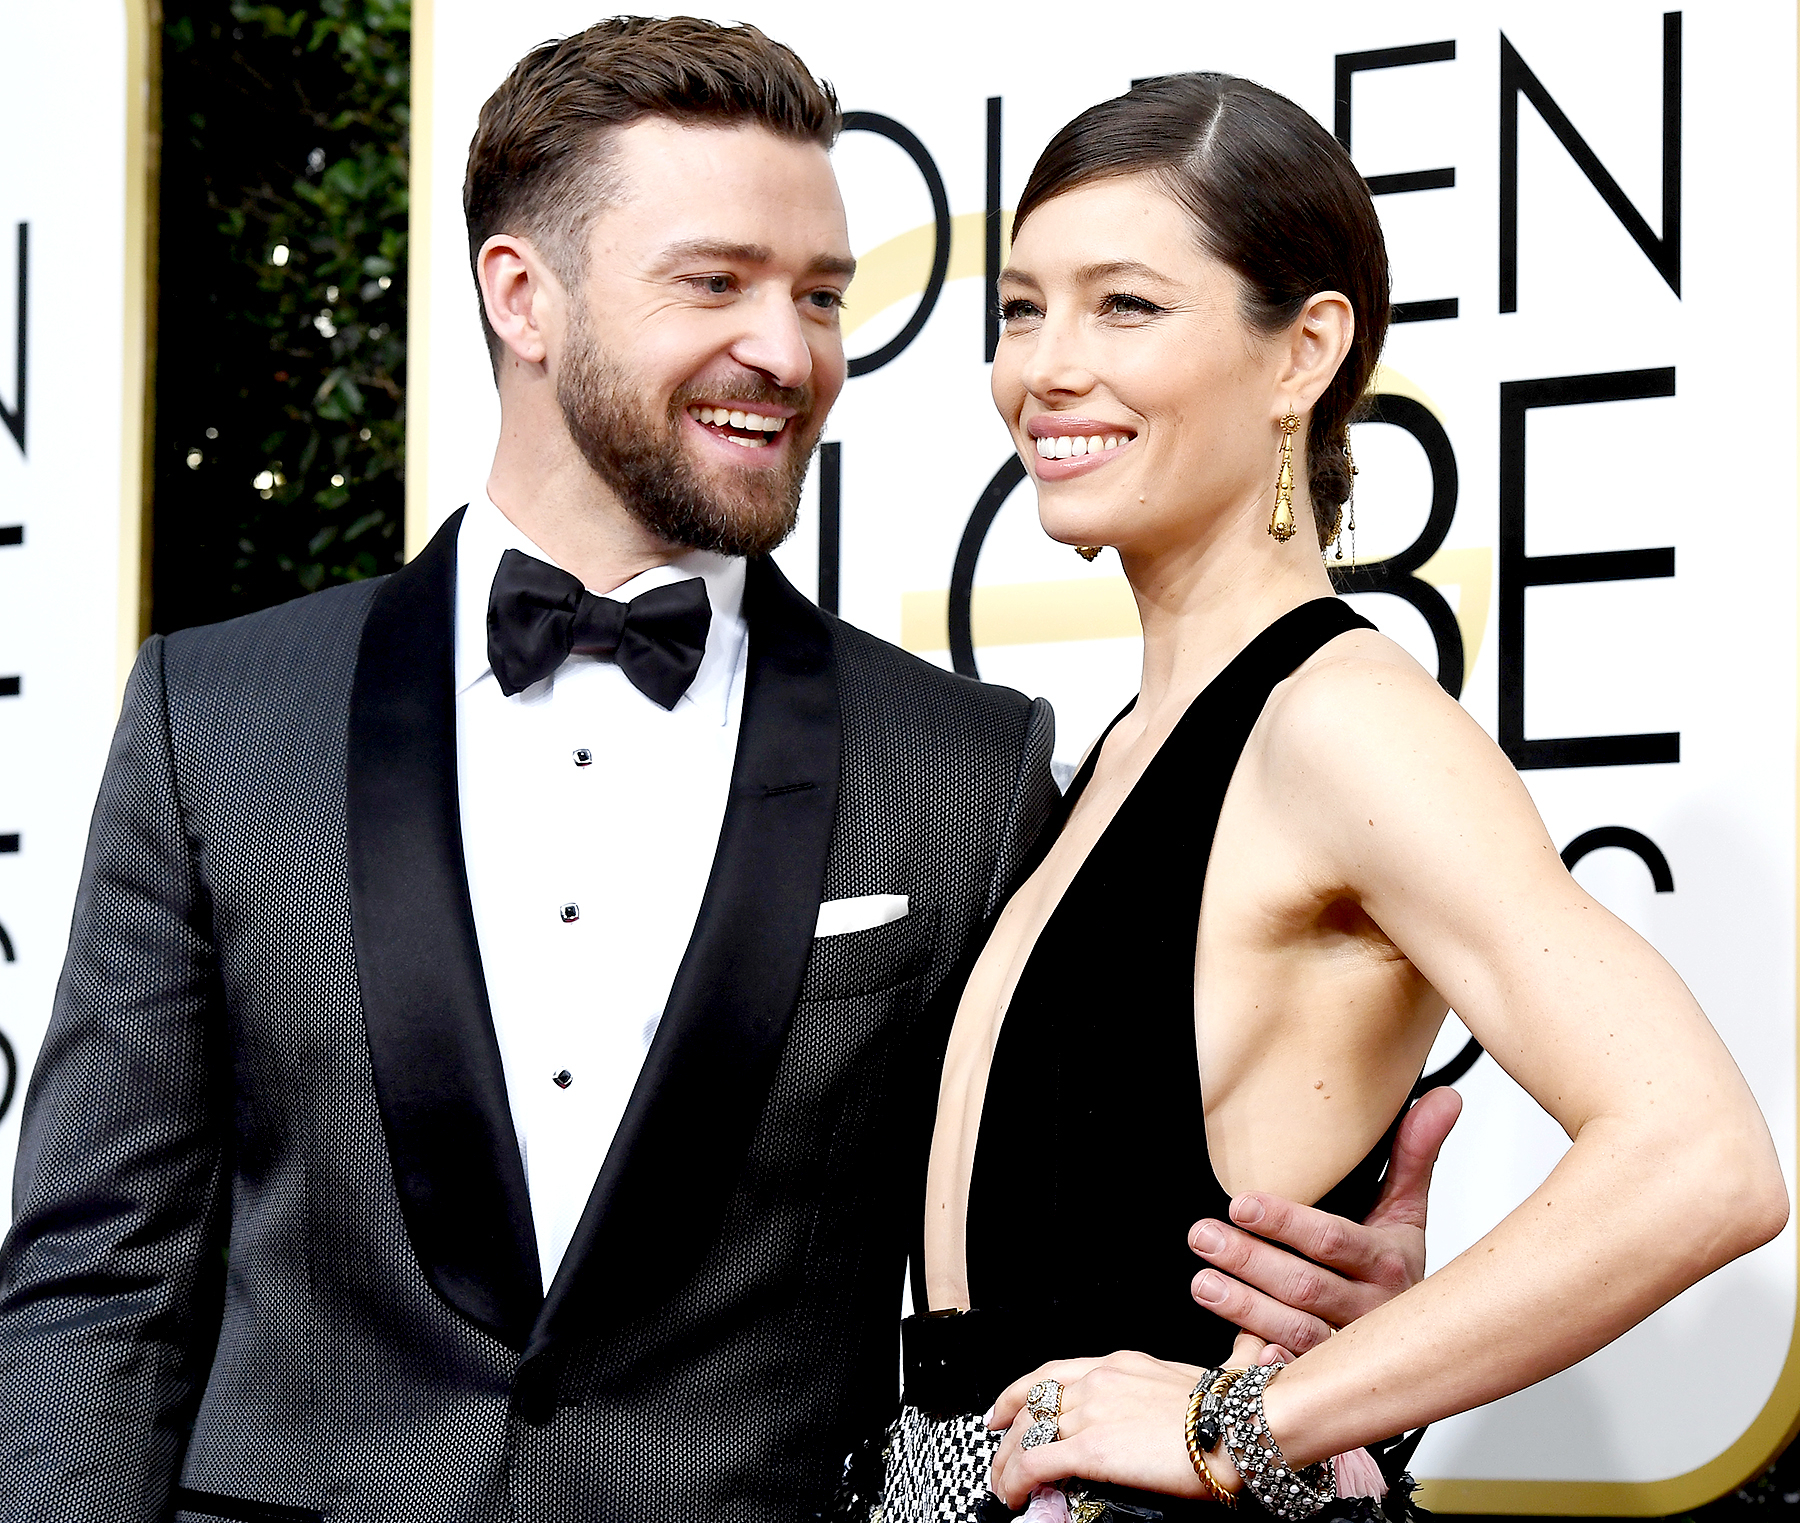 Justin Timberlake and Jessica Biel arrive to the 74th Annual Golden Globe Awards held at the Beverly Hilton Hotel on January 8, 2017.